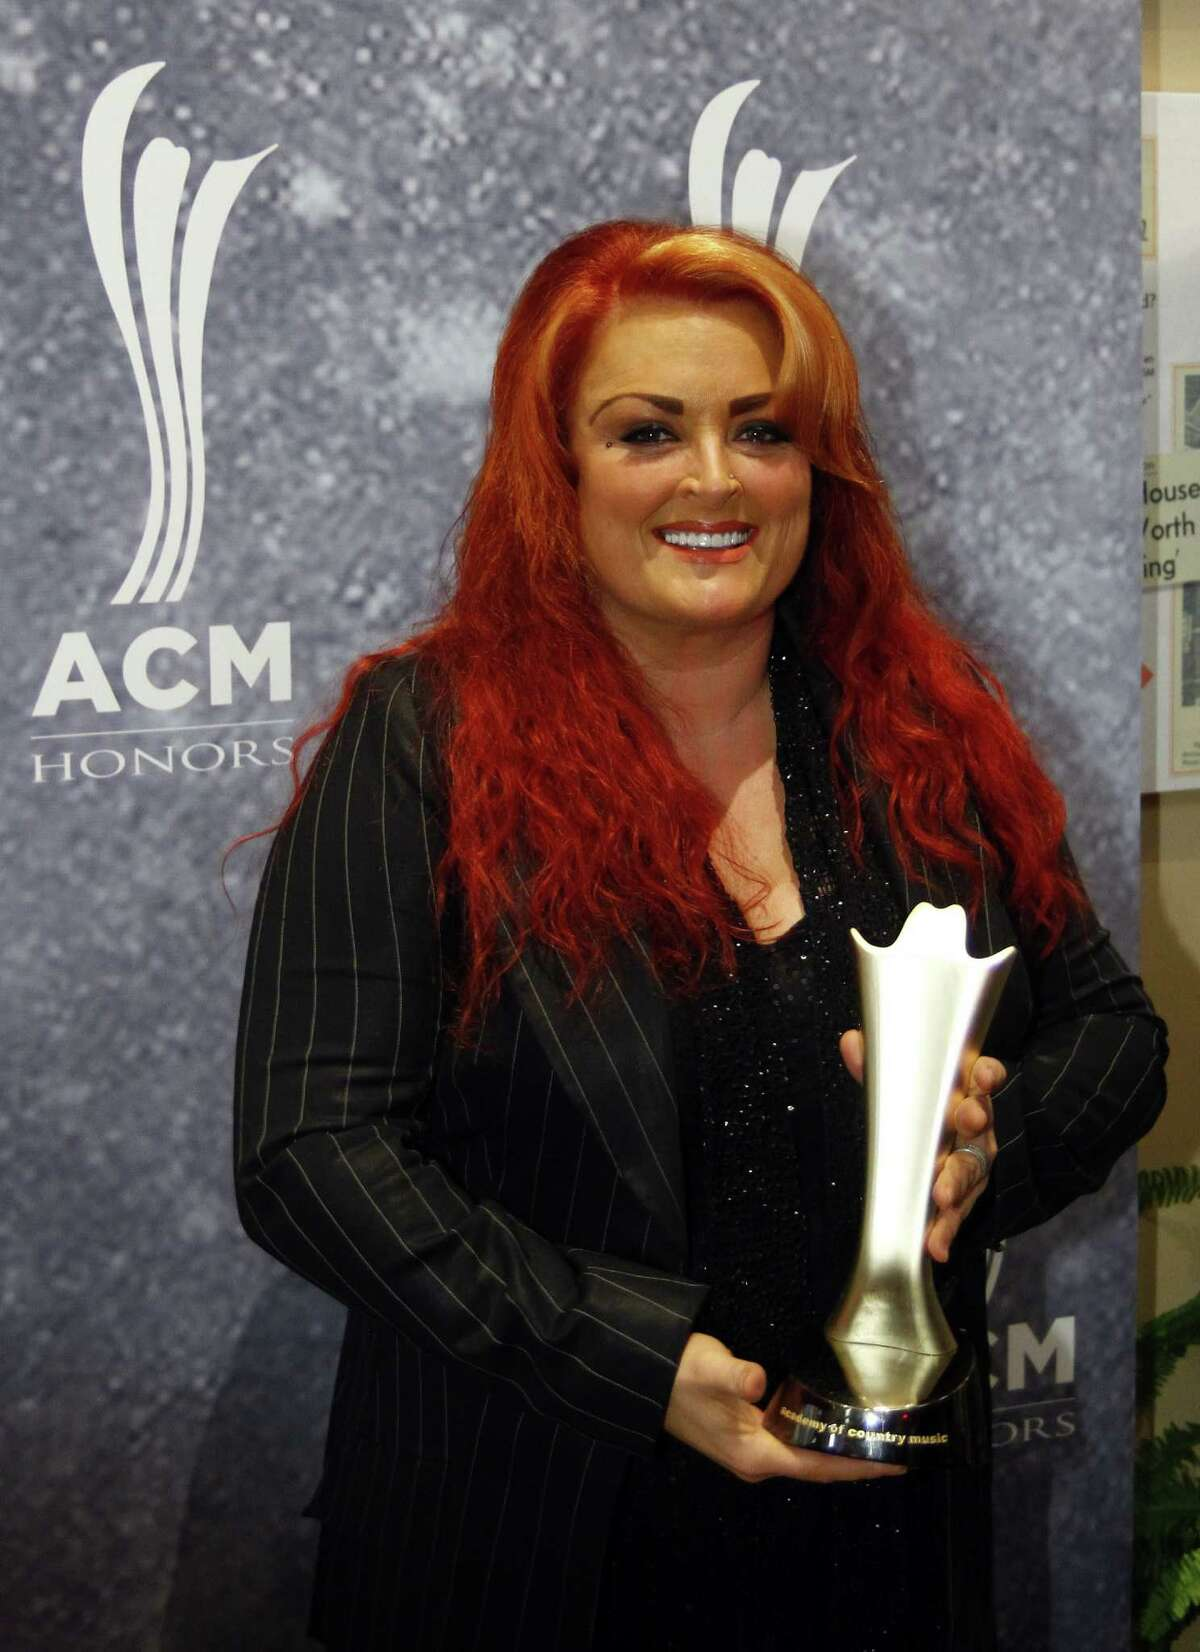 Wynonna Judd arrives at the ACM Honors at the Ryman Auditorium on Tuesday, Sept. 10, 2013 in Nashville, Tenn. (Photo by Wade Payne/Invision/AP) ORG XMIT: TNWP102